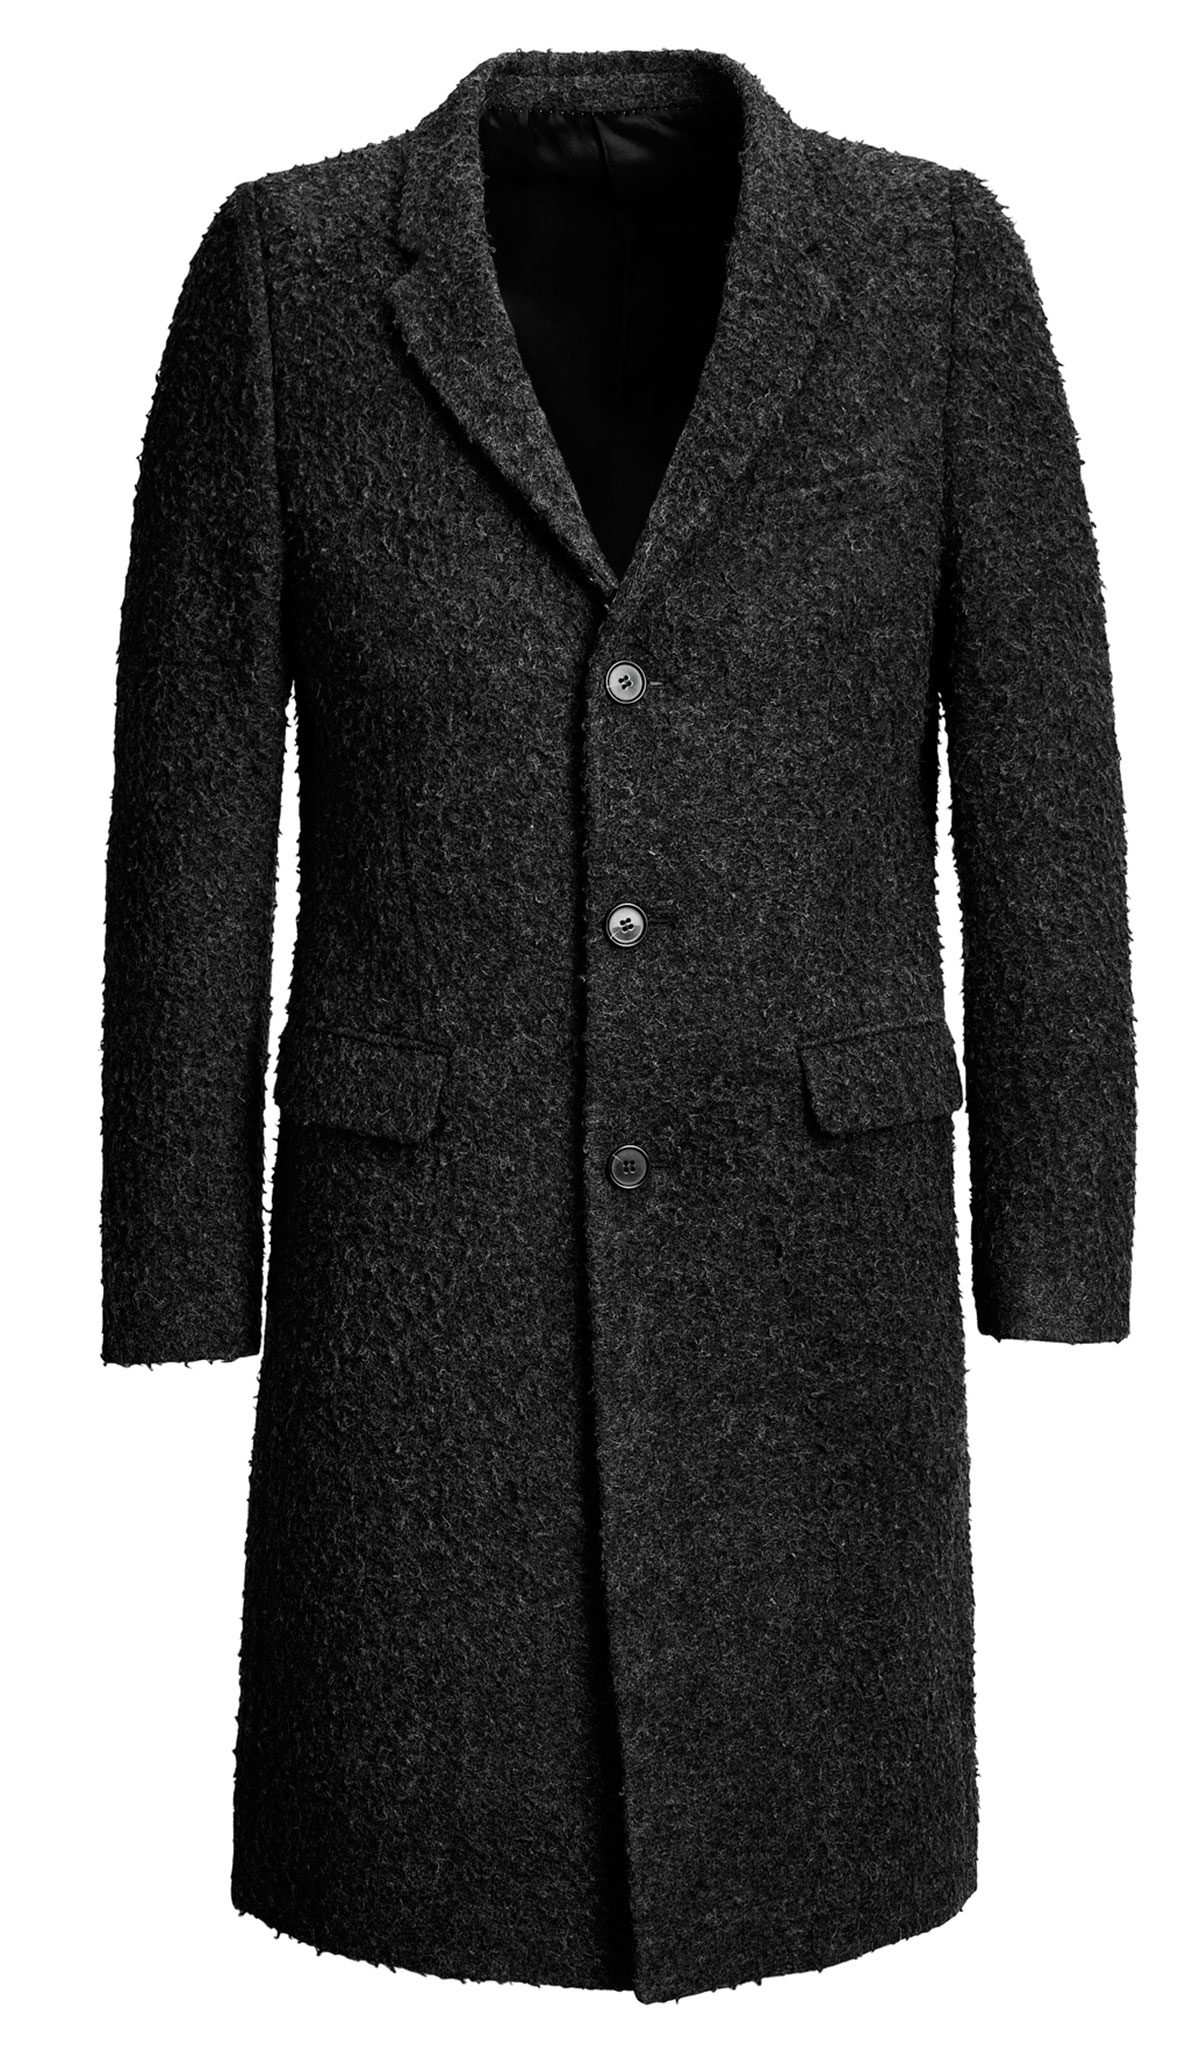 Wool Pea Coat from H&M – Looks Great with Everything, from Jeans to a Suit